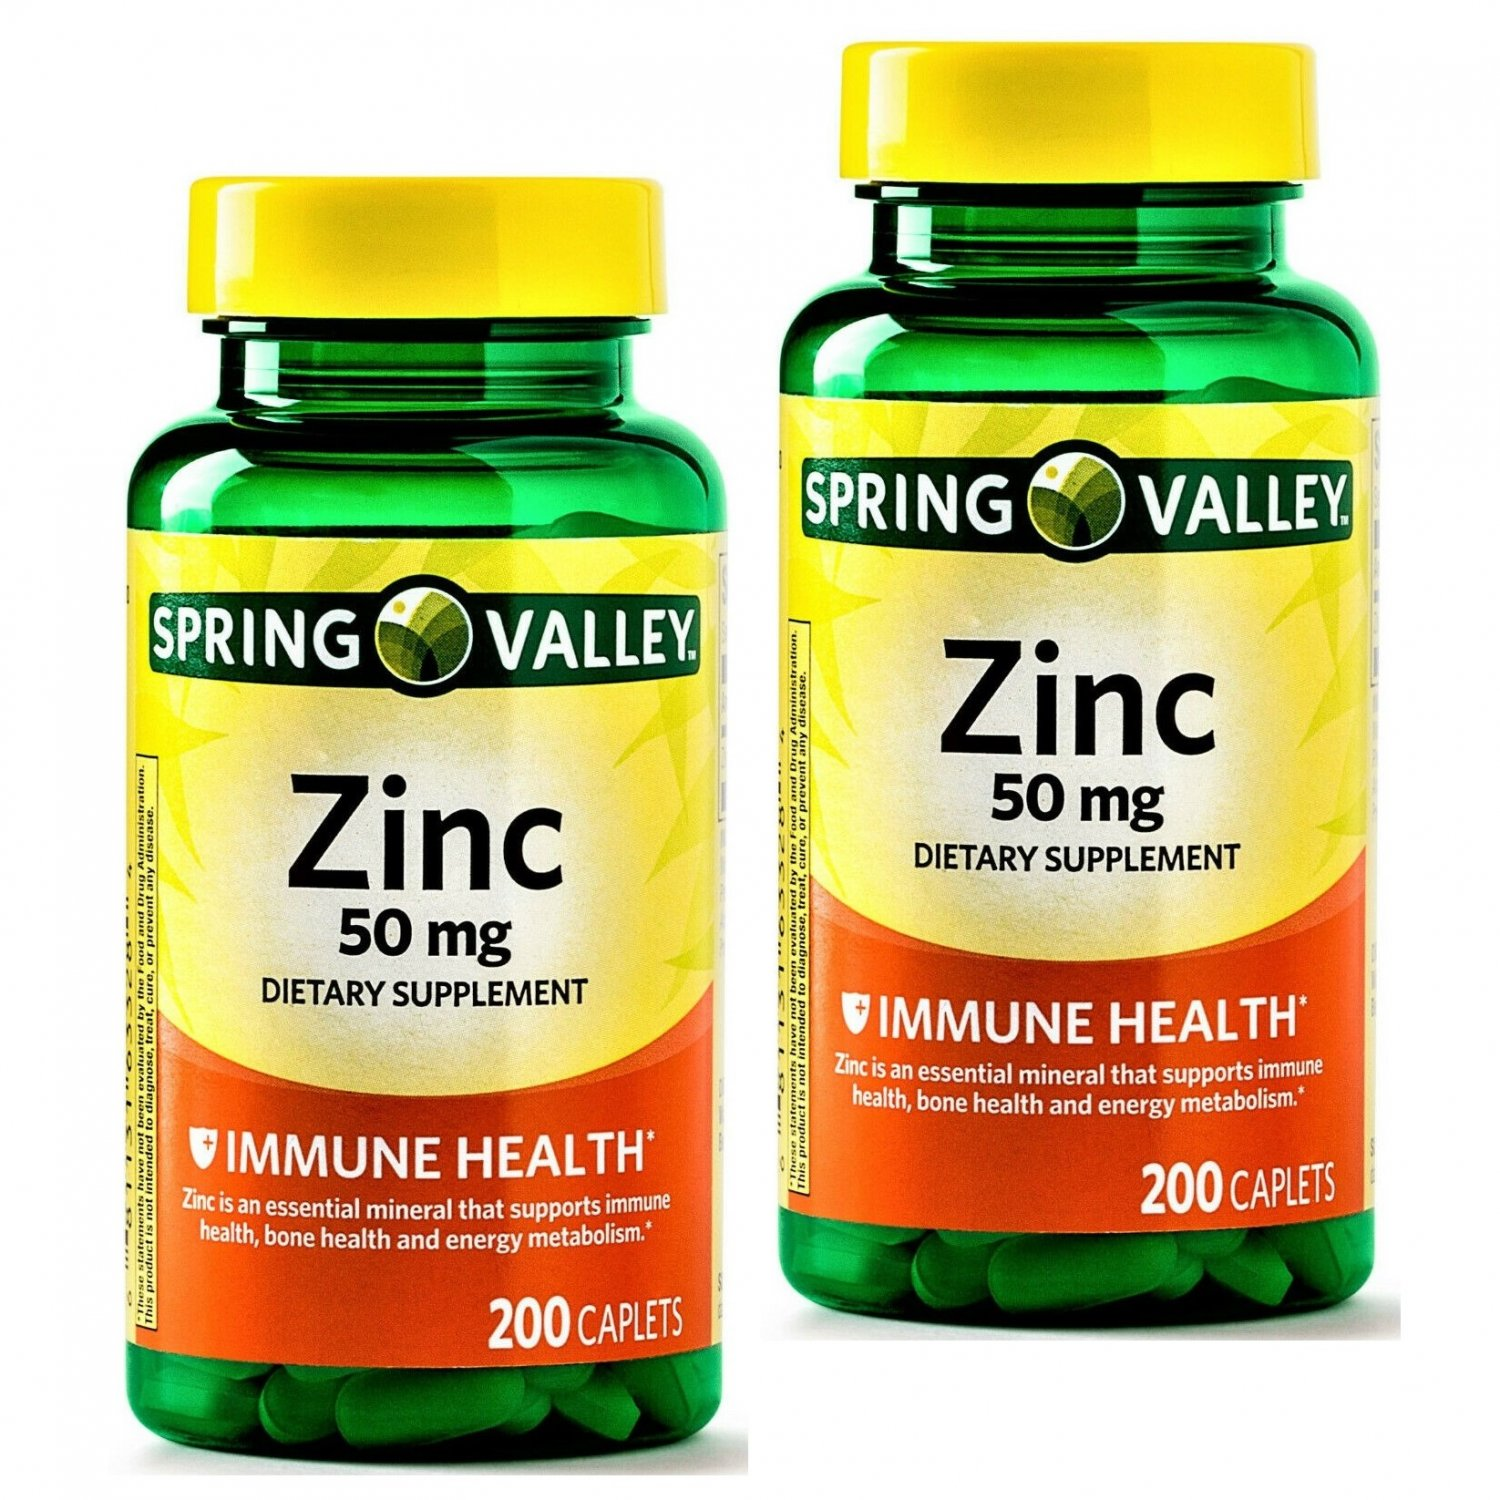 Spring Valley Zinc 50 mg Immune Health Dietary Supplement 200 Caplets Pack (Pack of 2)